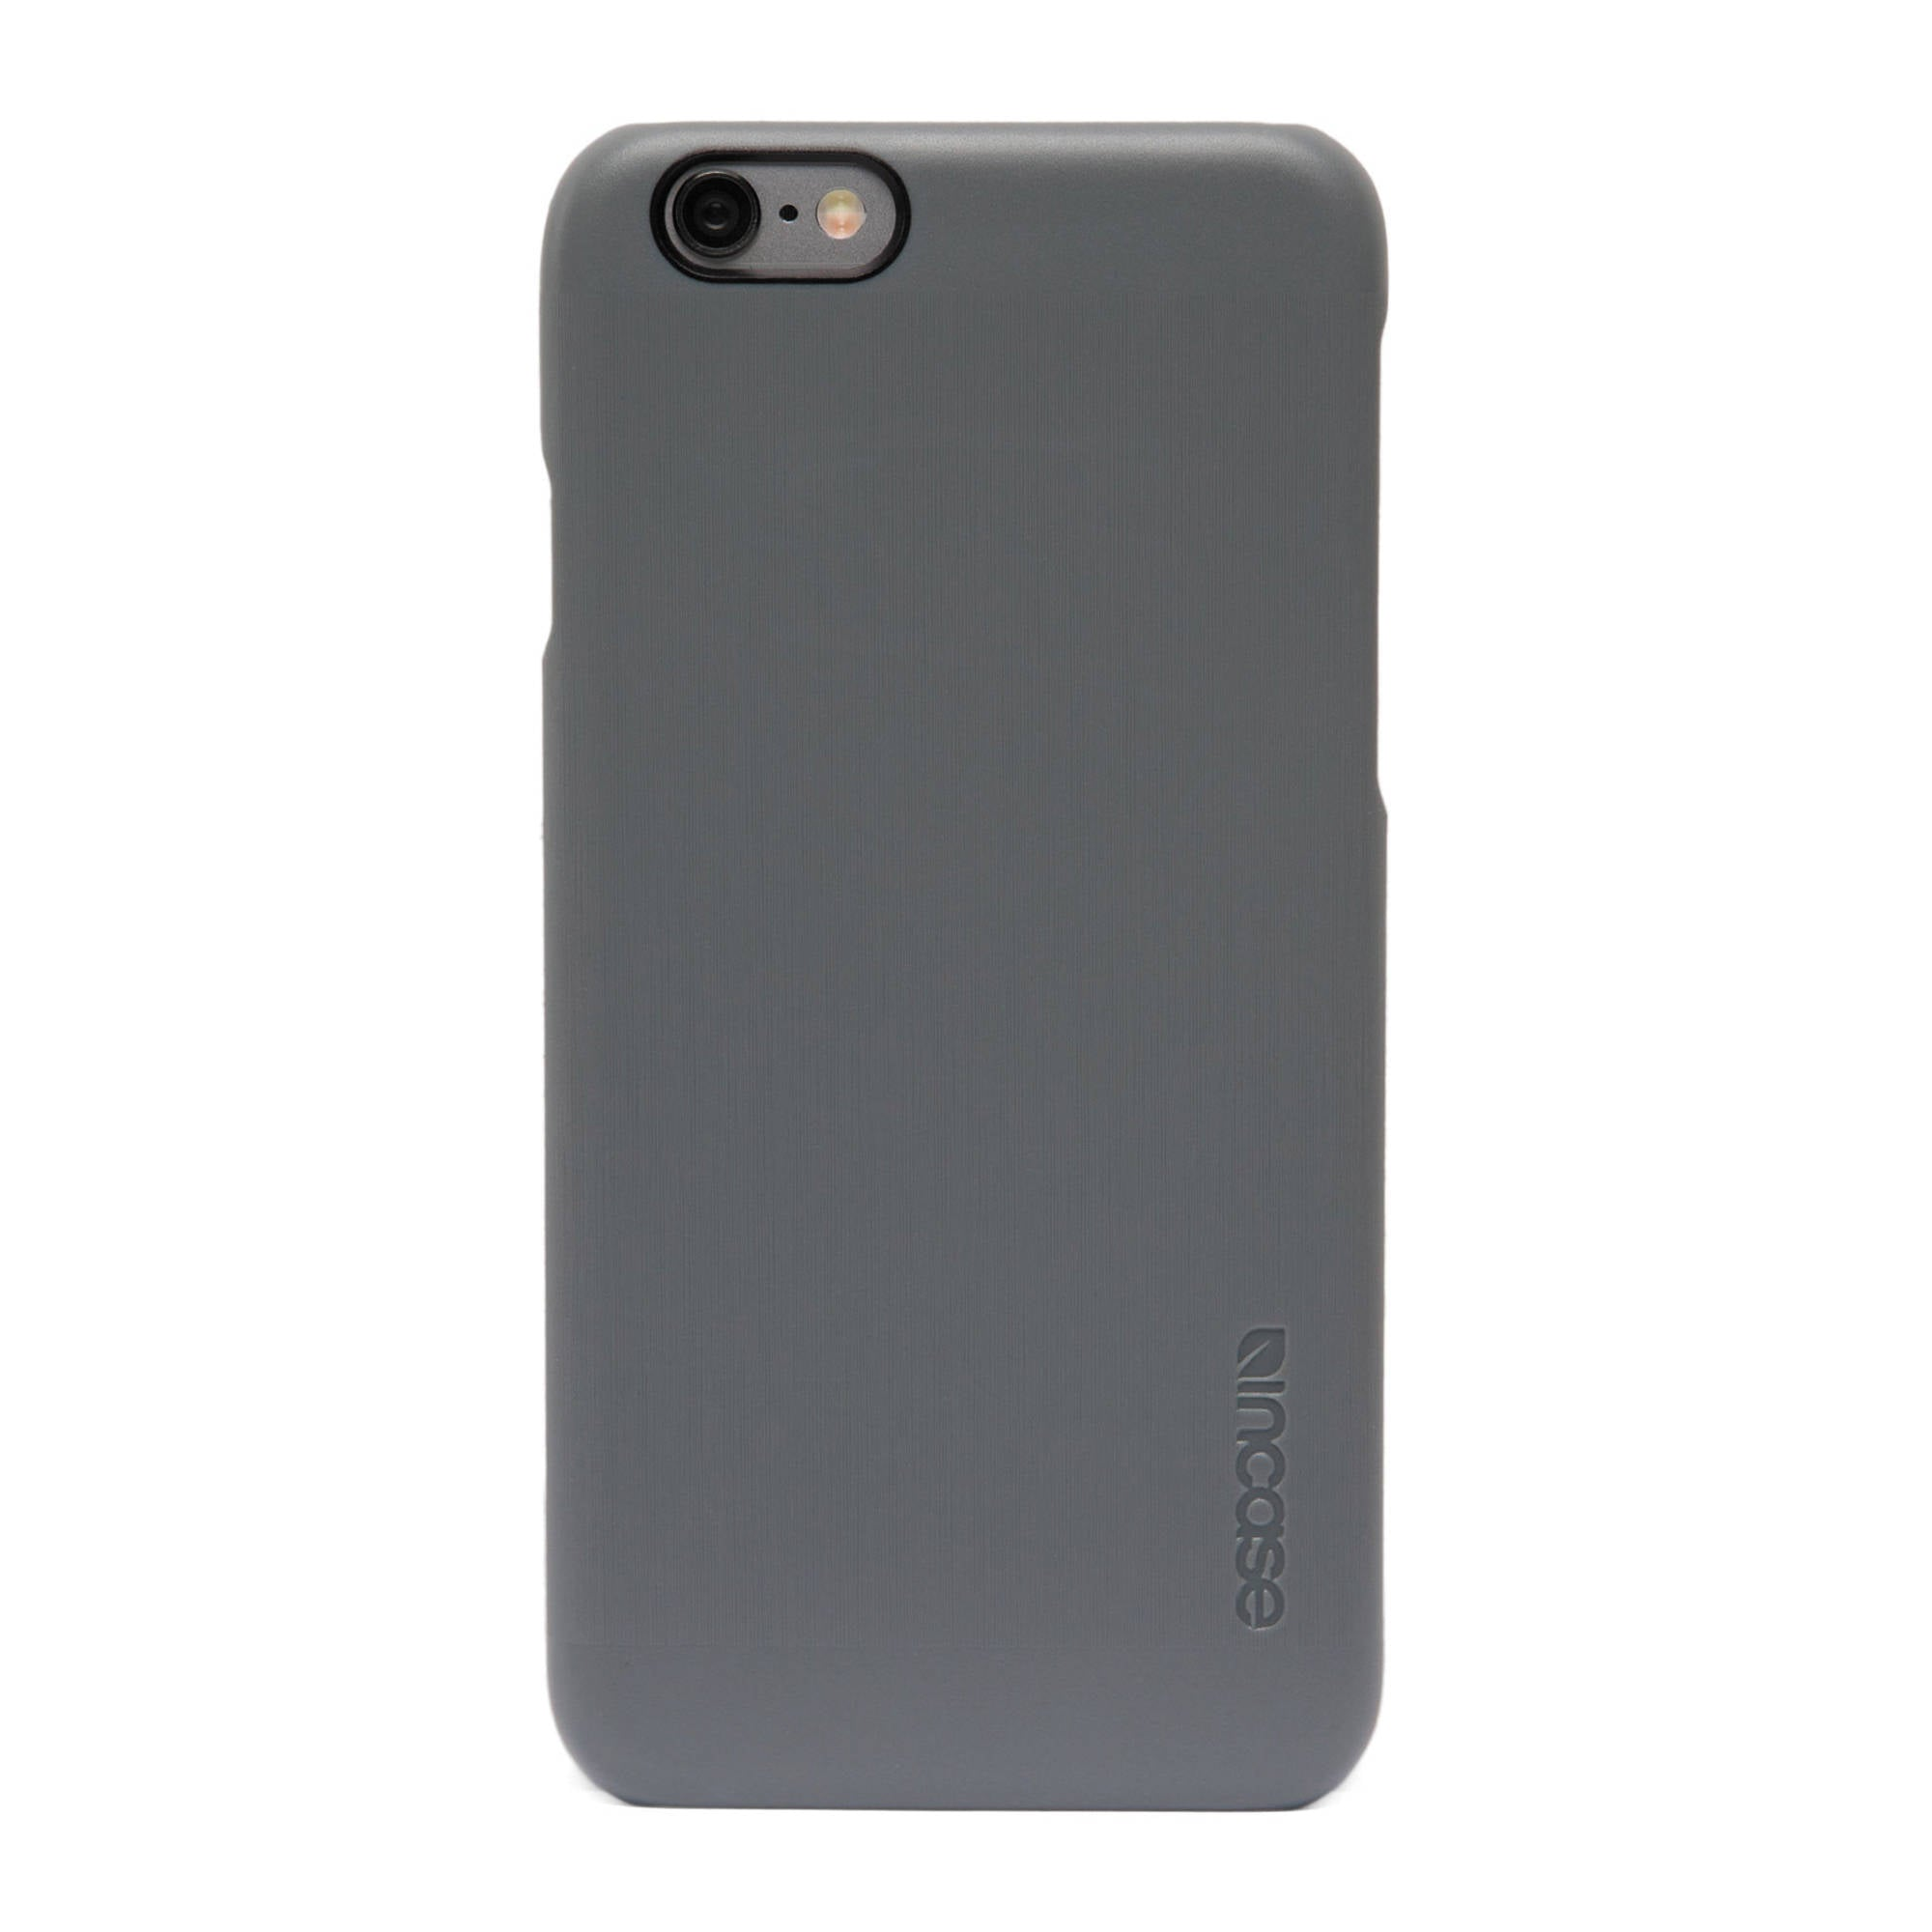 Incase Snap Snap Case for iPhone 6 - شعري / رمادي